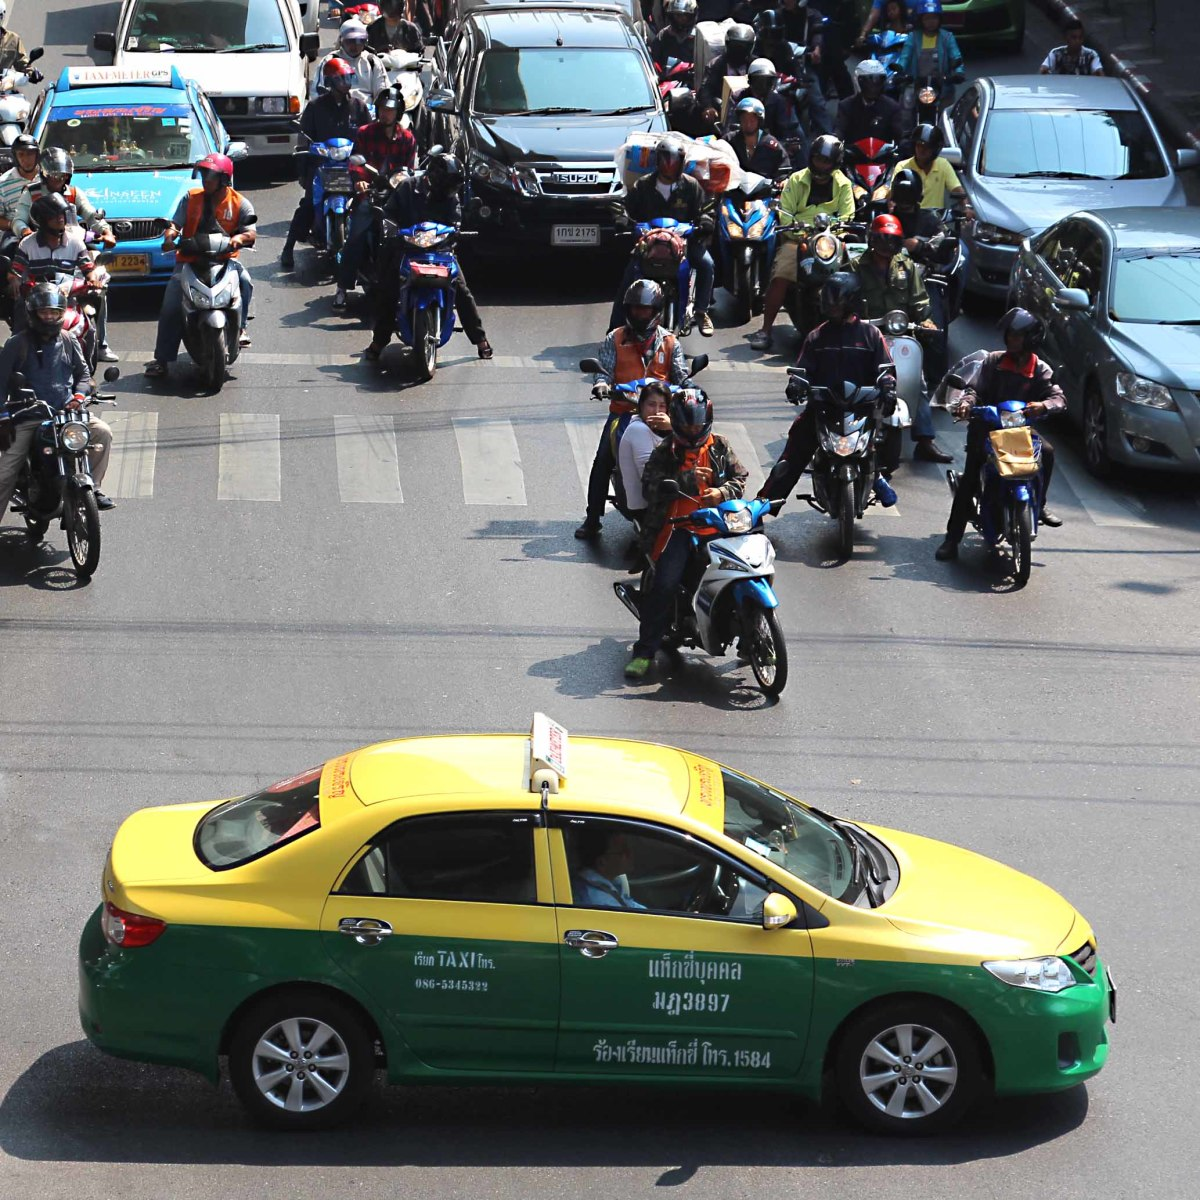 One of the green-and-yellow taxis